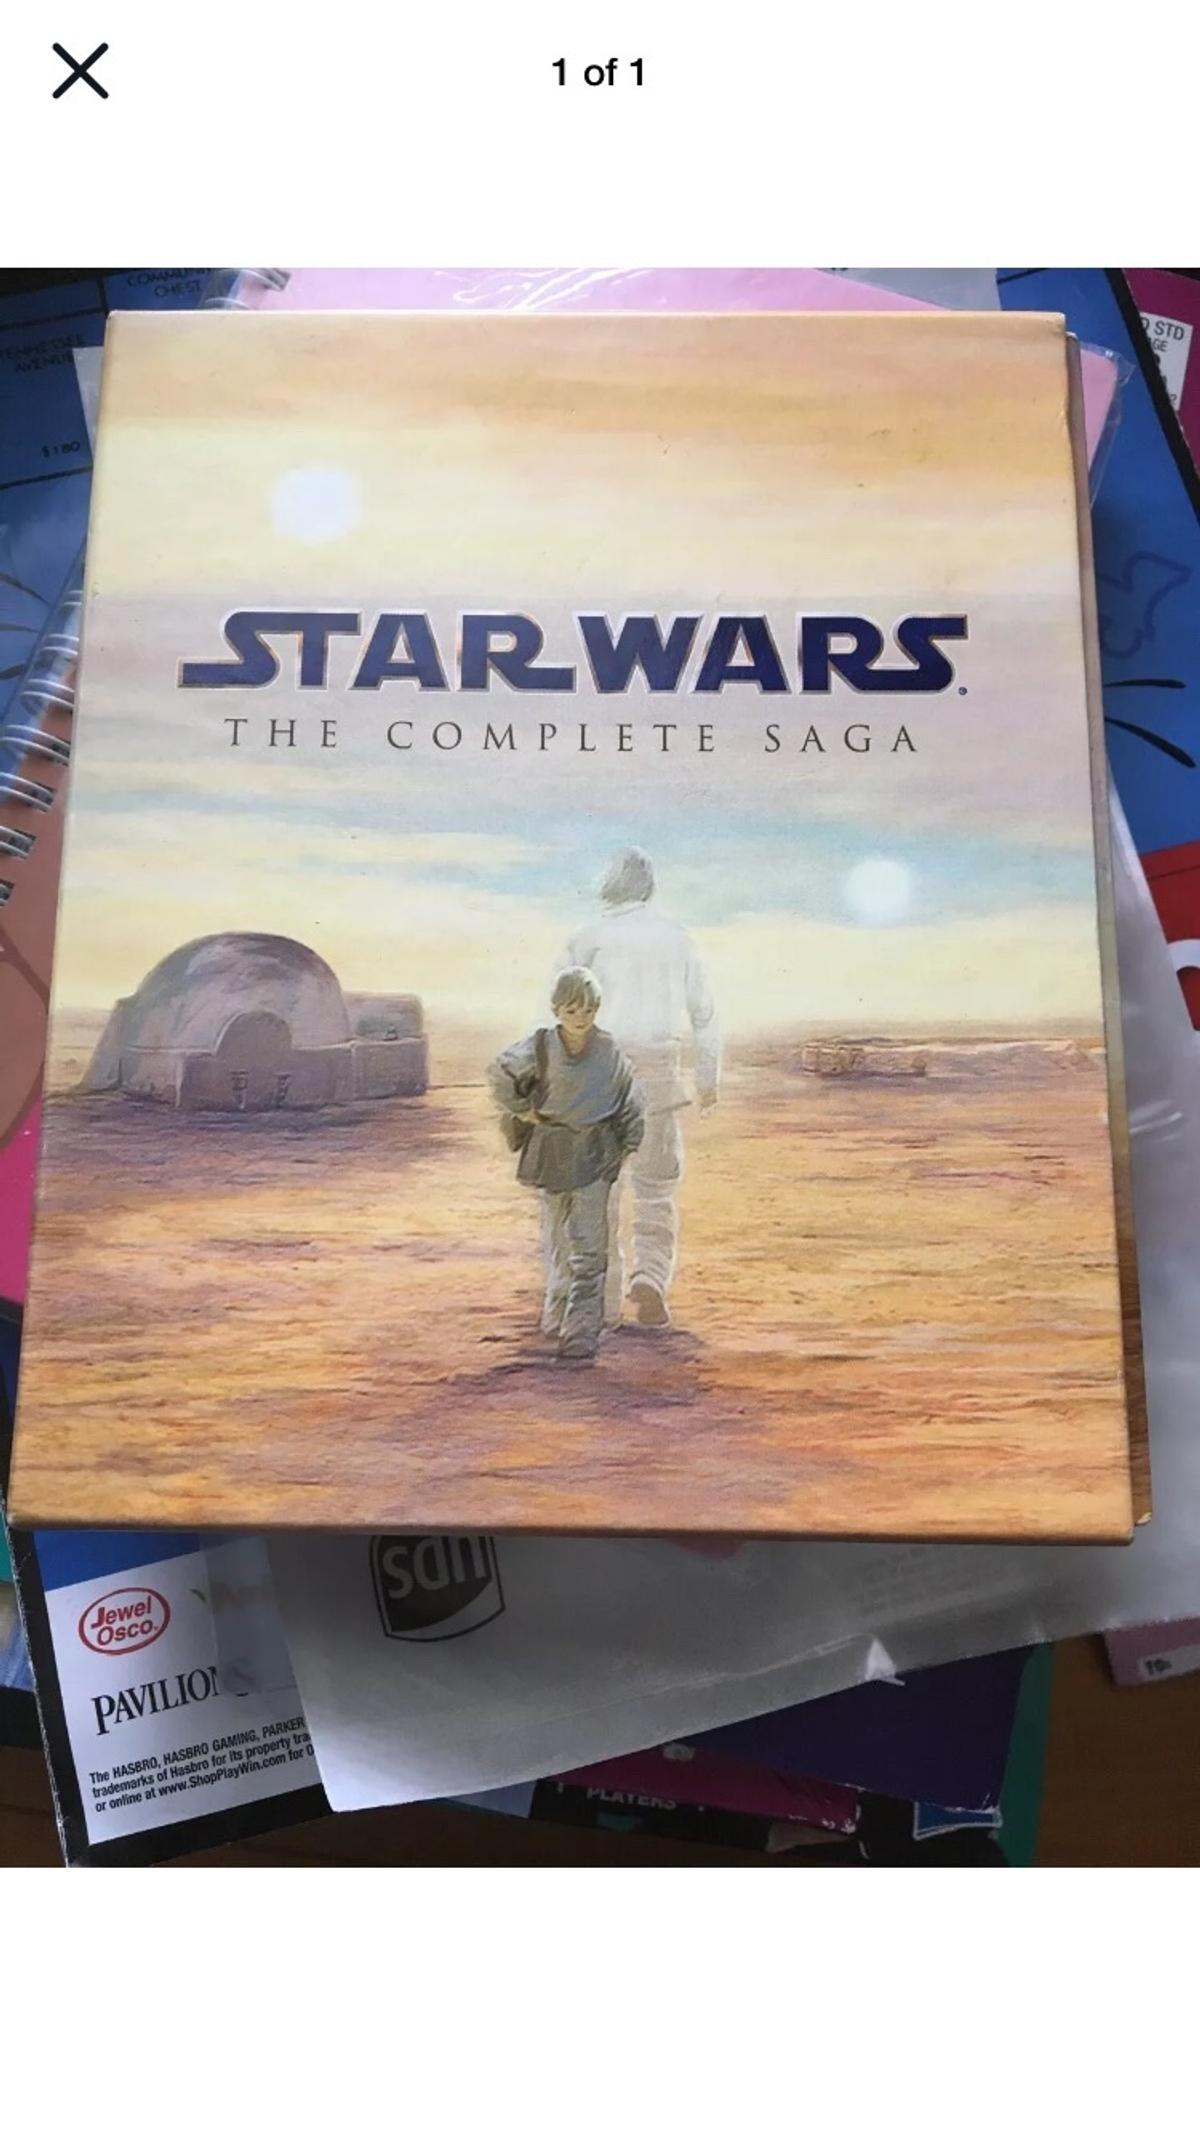 This is The Star Wars Blu-ray Boxset 1-6